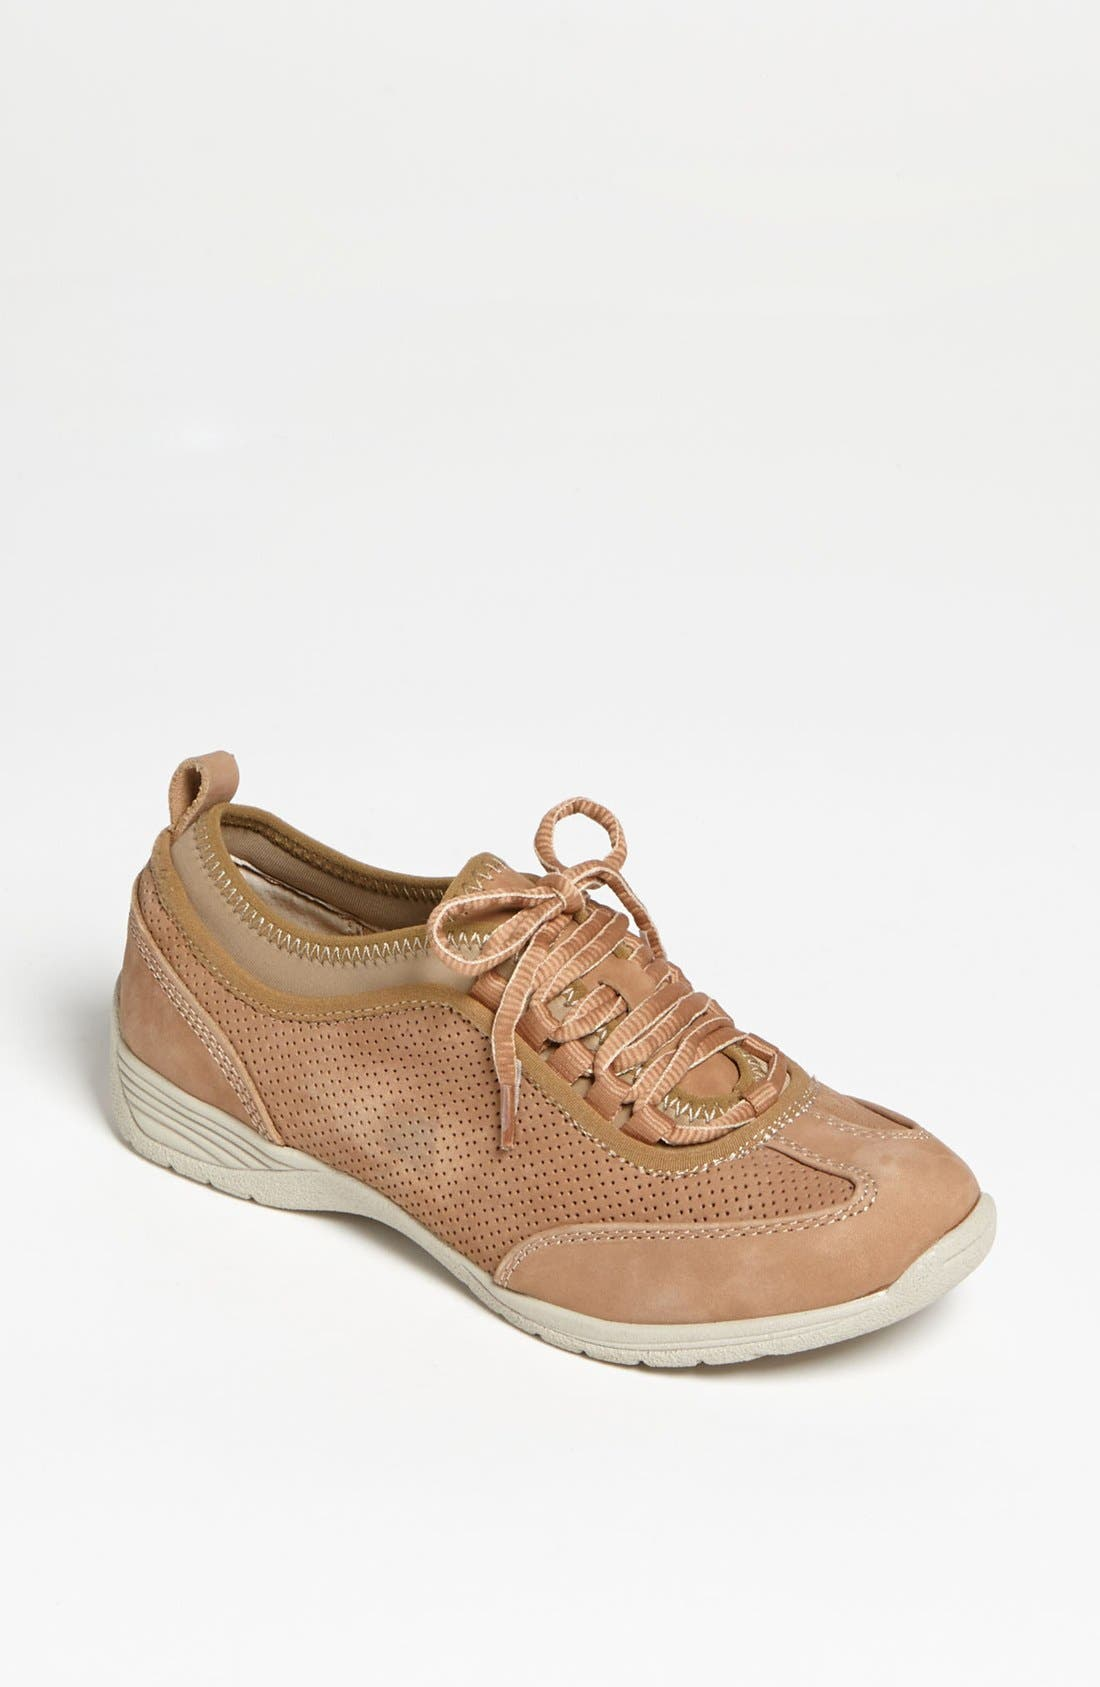 Main Image - Softspots 'Tarin' Lace-Up